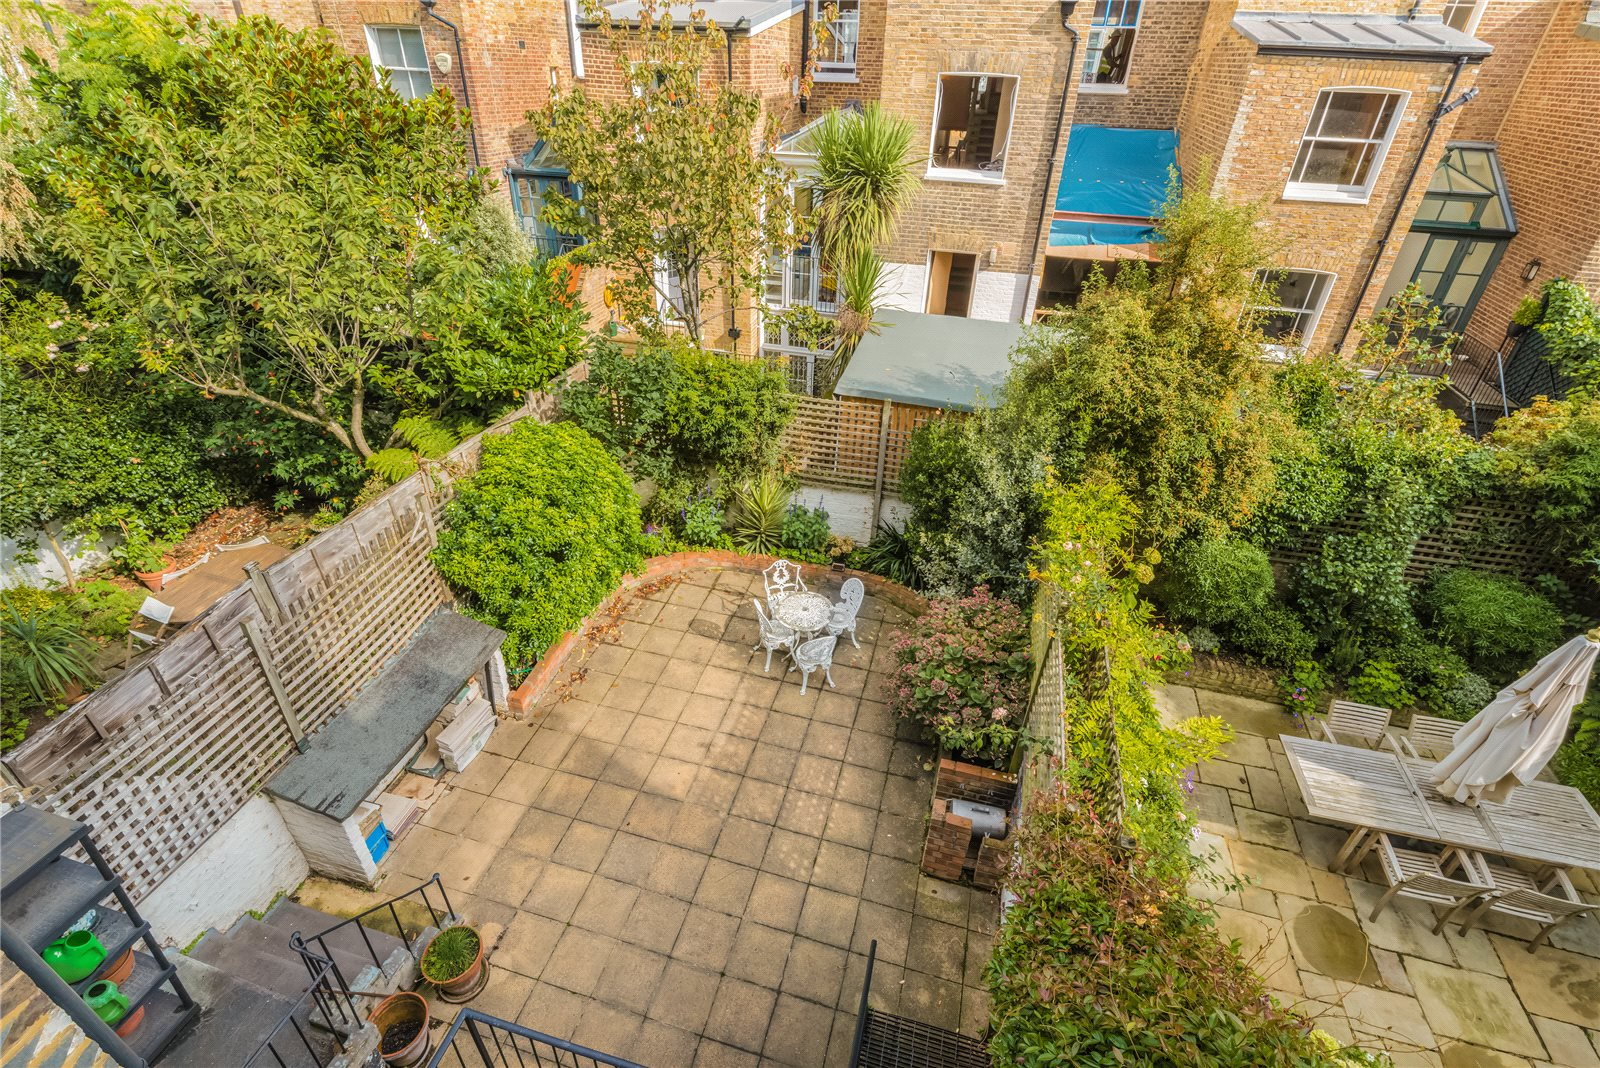 Additional photo for property listing at Neville Terrace, South Kensington, London, SW7 South Kensington, London, Angleterre